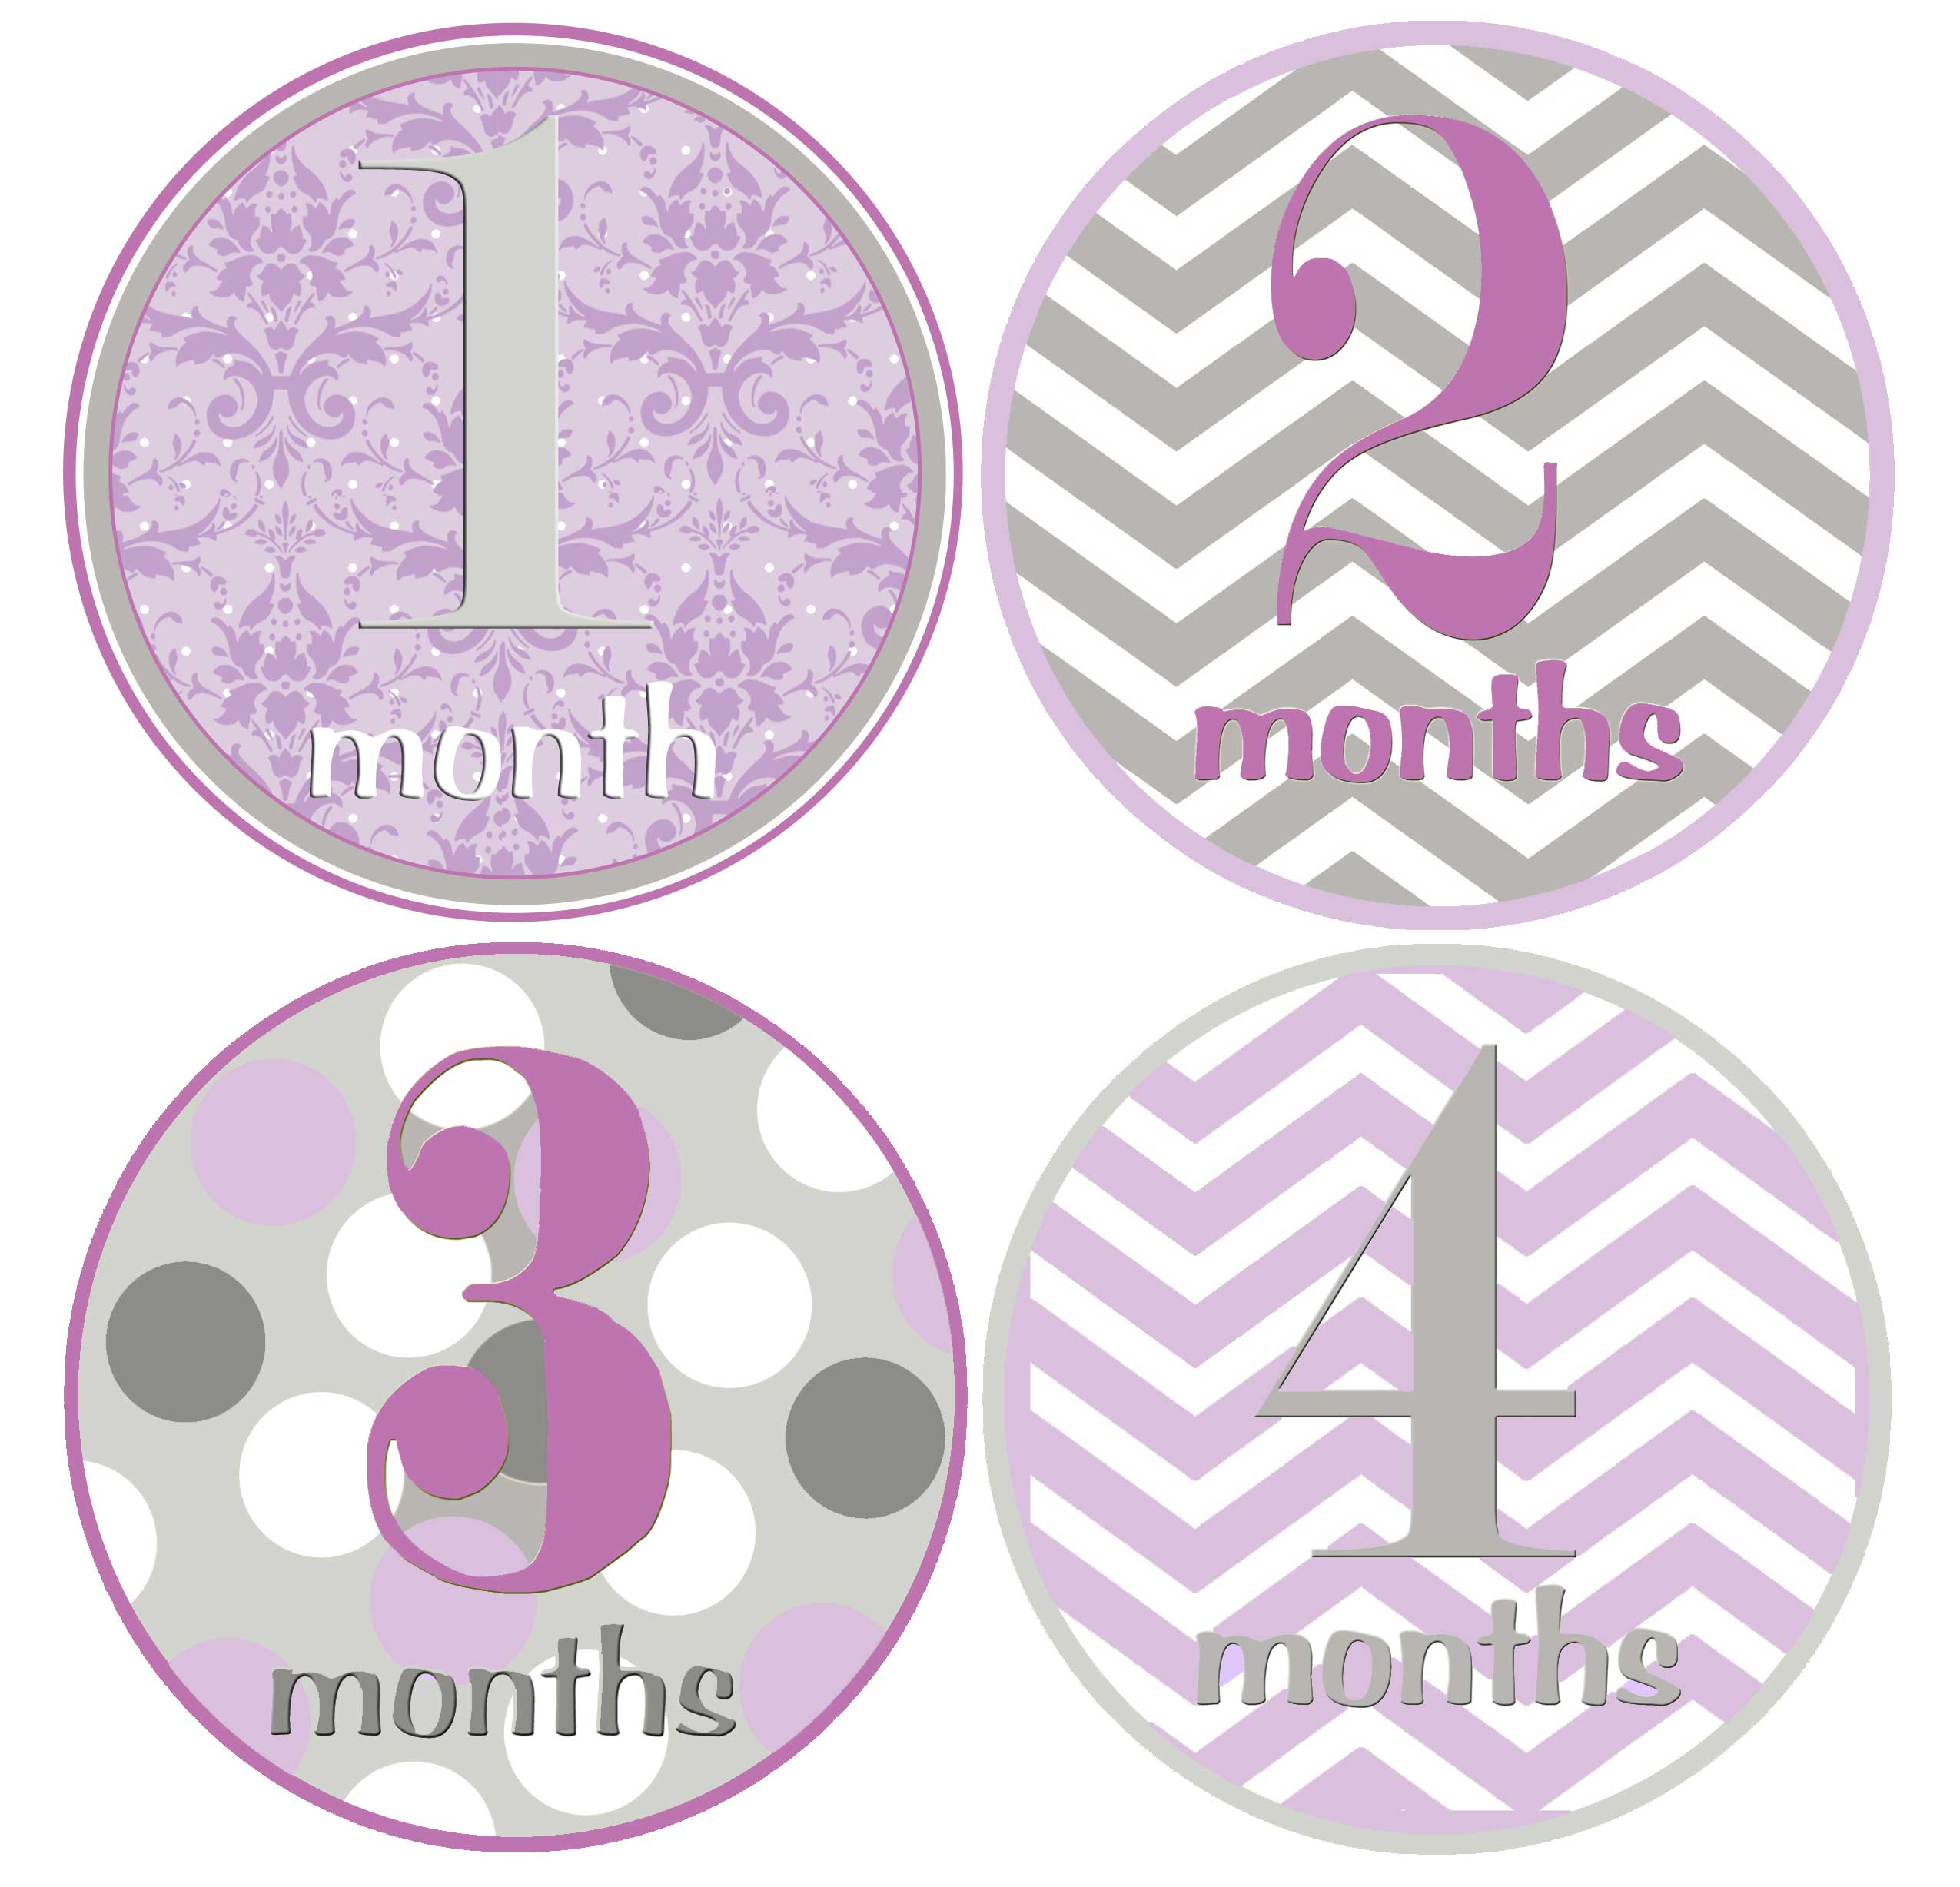 photograph relating to Baby Month Stickers Printable known as Boy or girl Female Thirty day period Stickers Woman 1st yr Milestones Chevron Print Red Gray 1-12 Thirty day period Age Labels